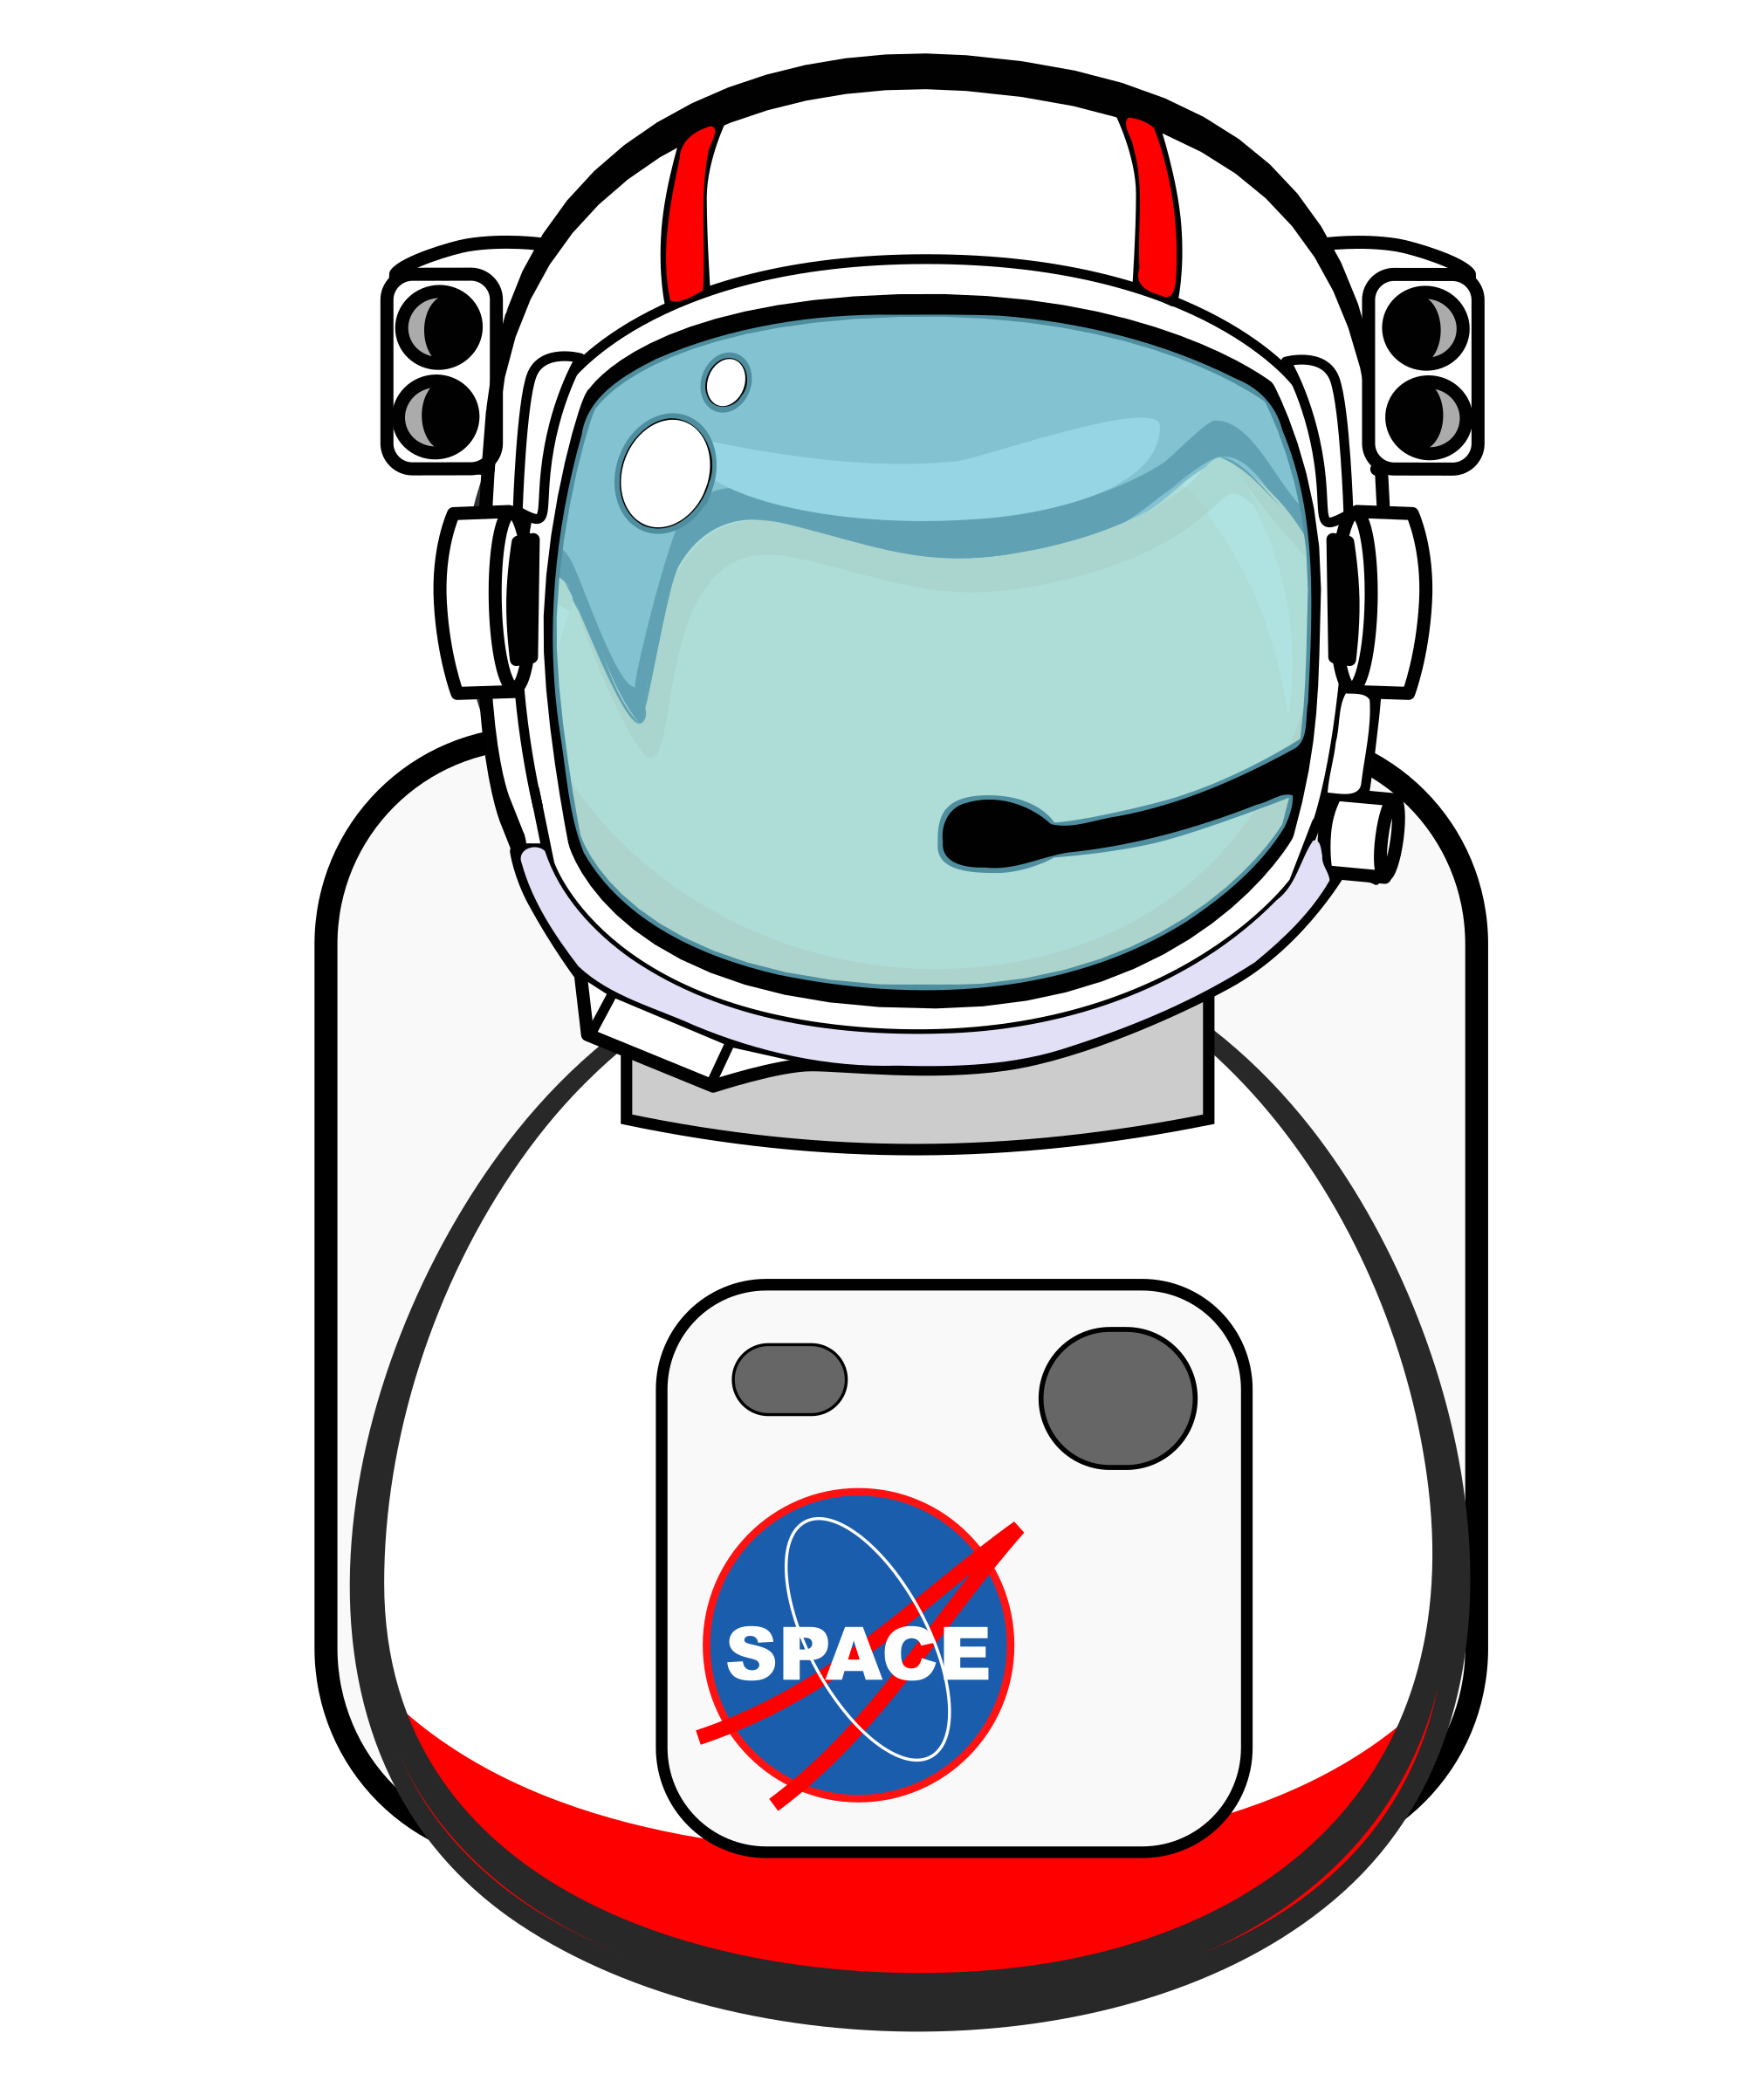 Big image png. Astronaut clipart body